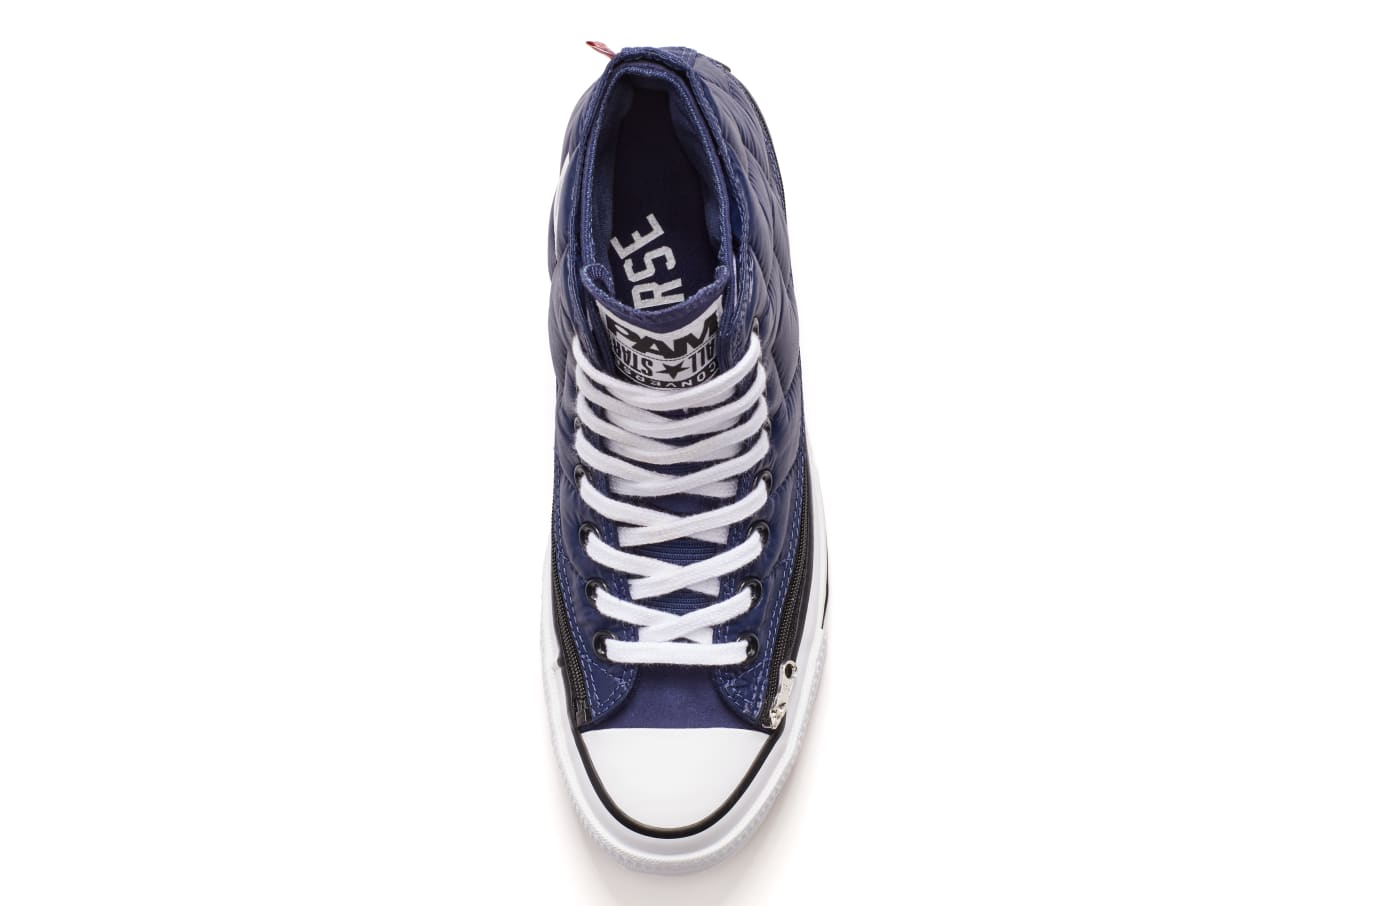 Perks and Mini x Converse Chuck 70 (Top)